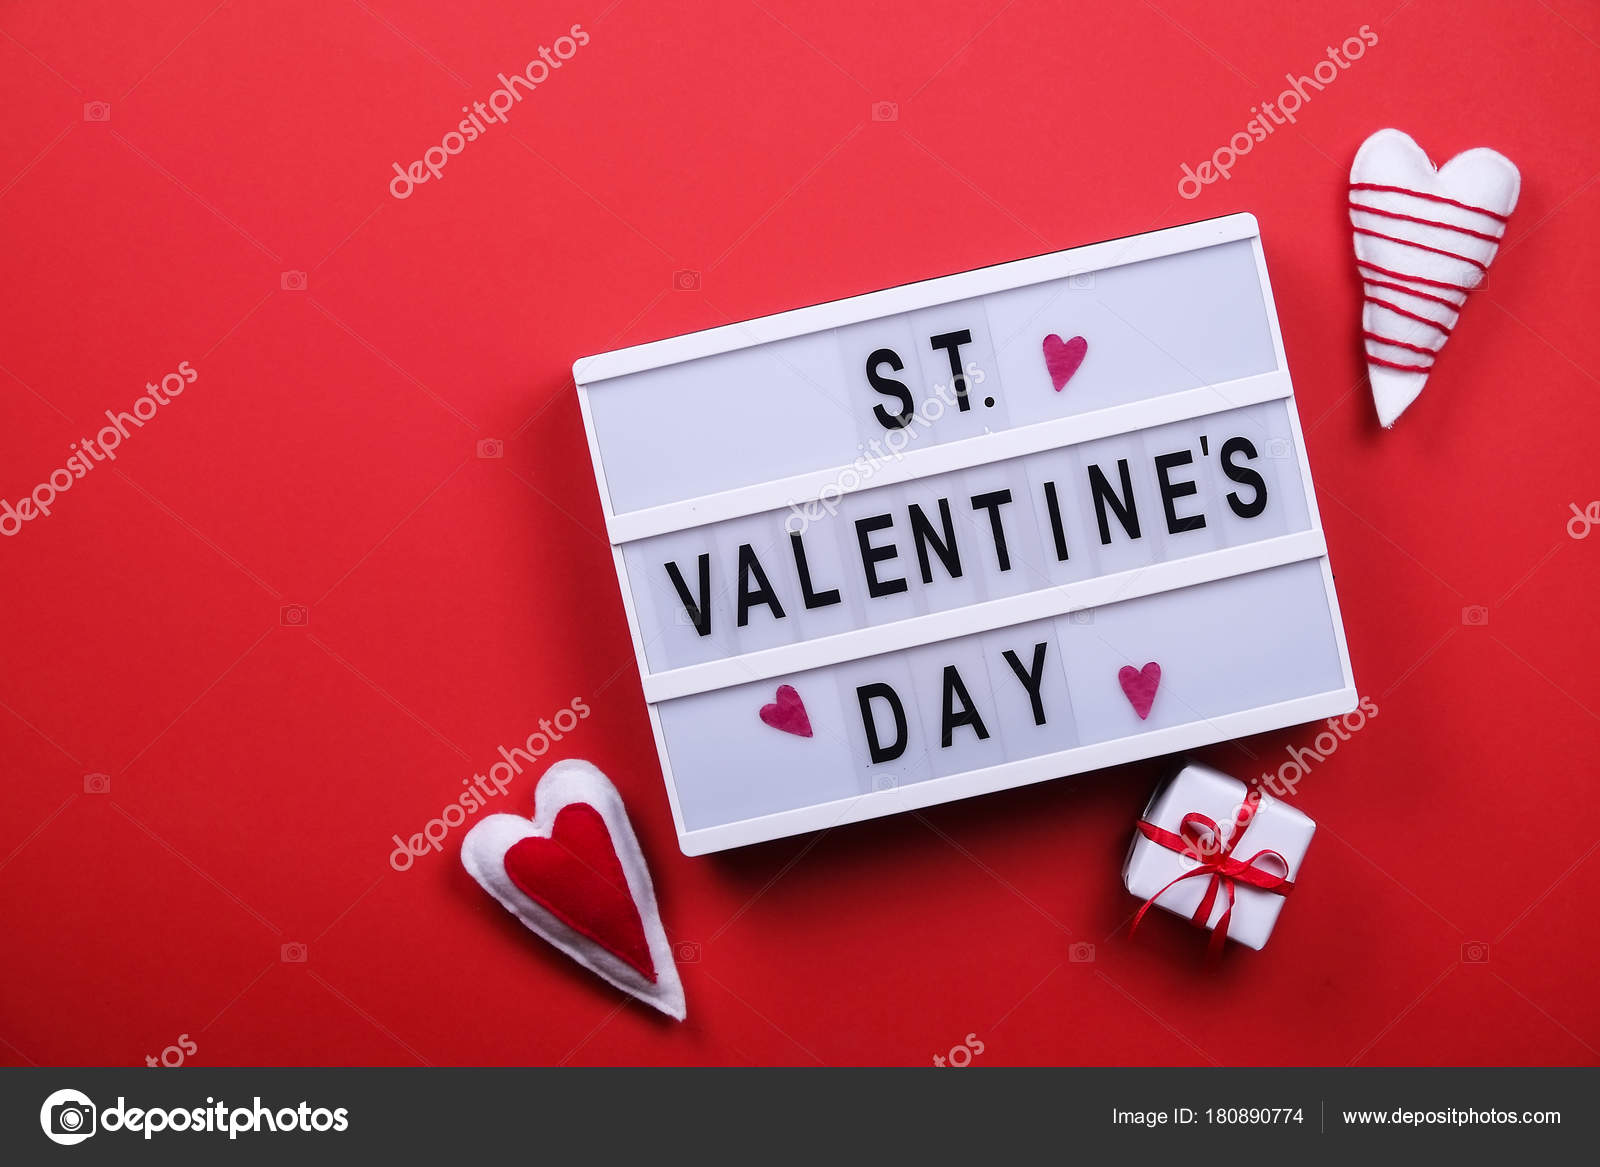 Happy valentines day love symbols concept on bright red happy valentines day love symbols concept on bright red background stock photo biocorpaavc